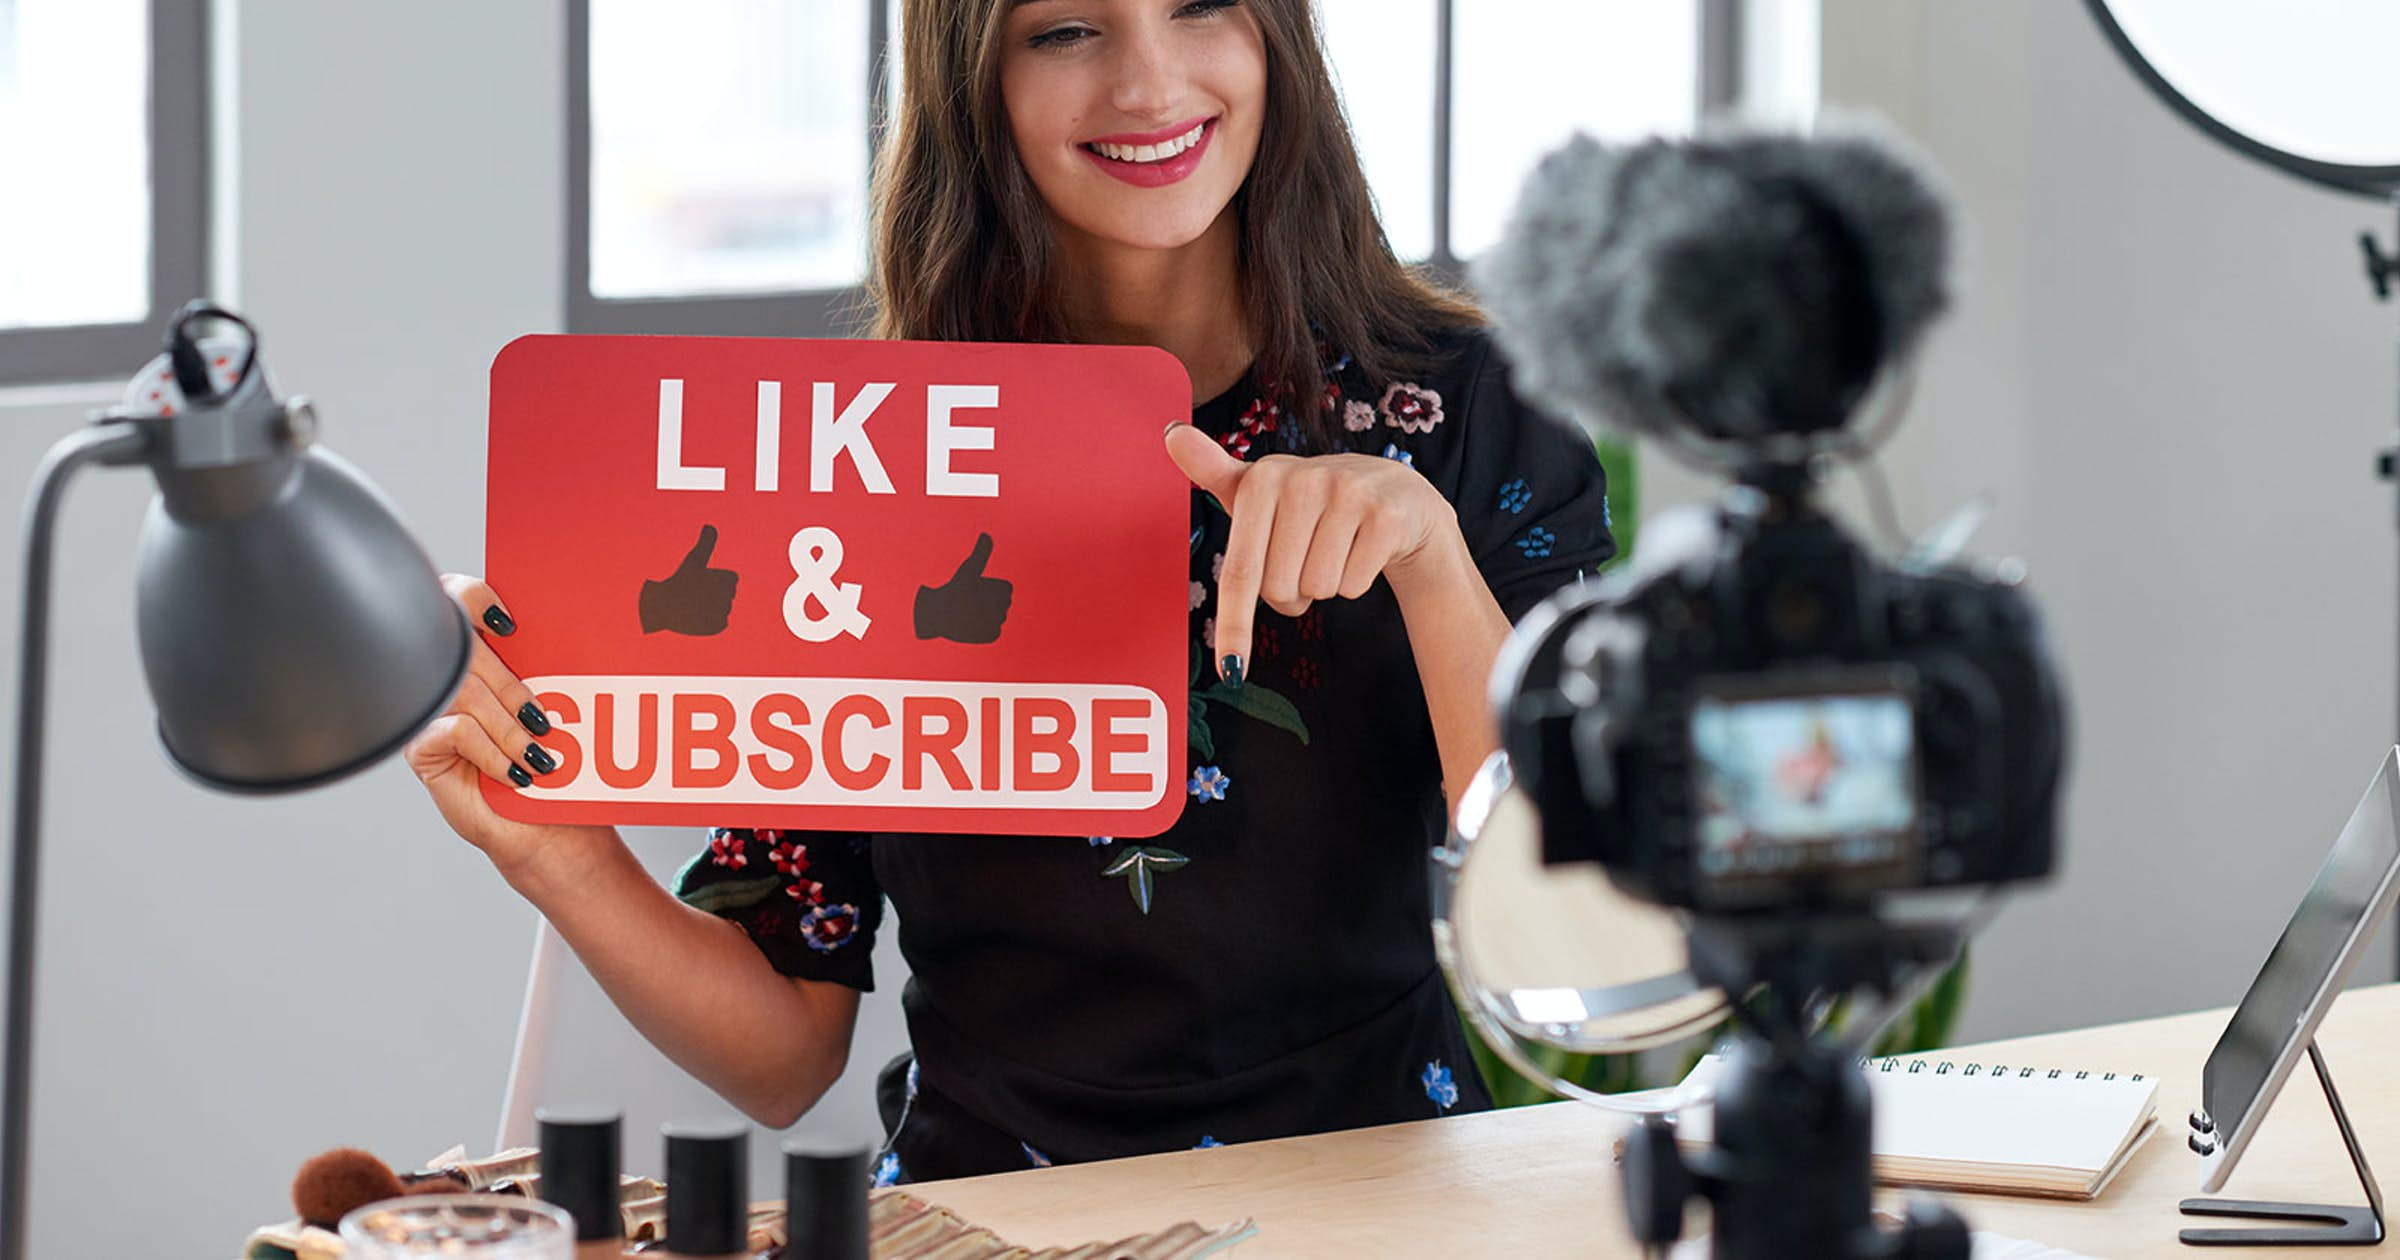 Video to Promote Your Business